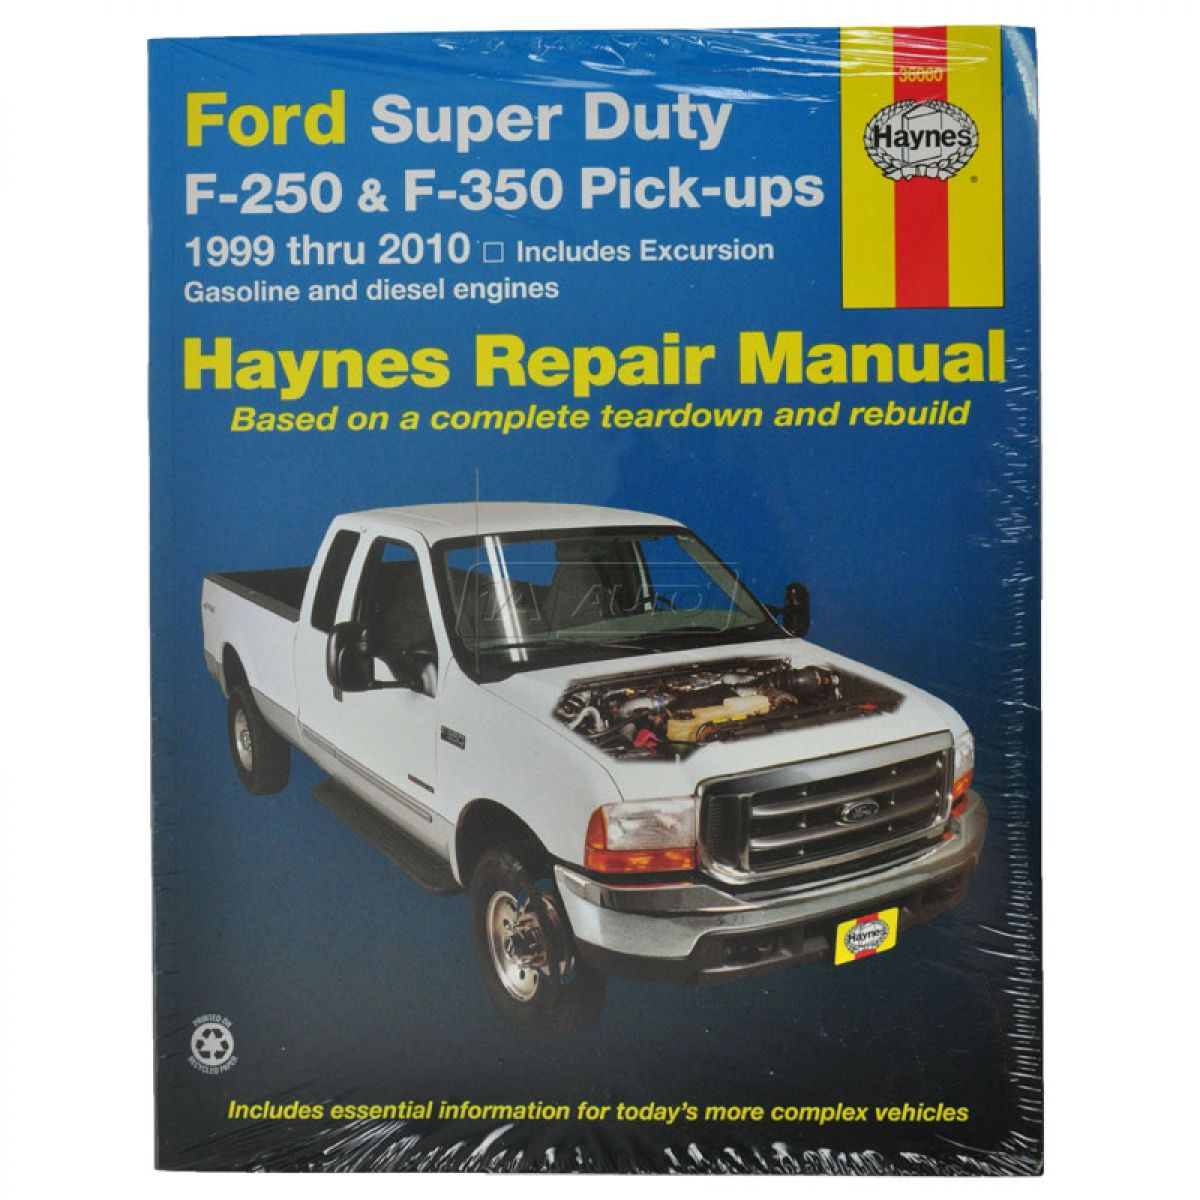 Ford Service Manuals: Haynes Repair Service Manual For 99 06 Ford Excursion